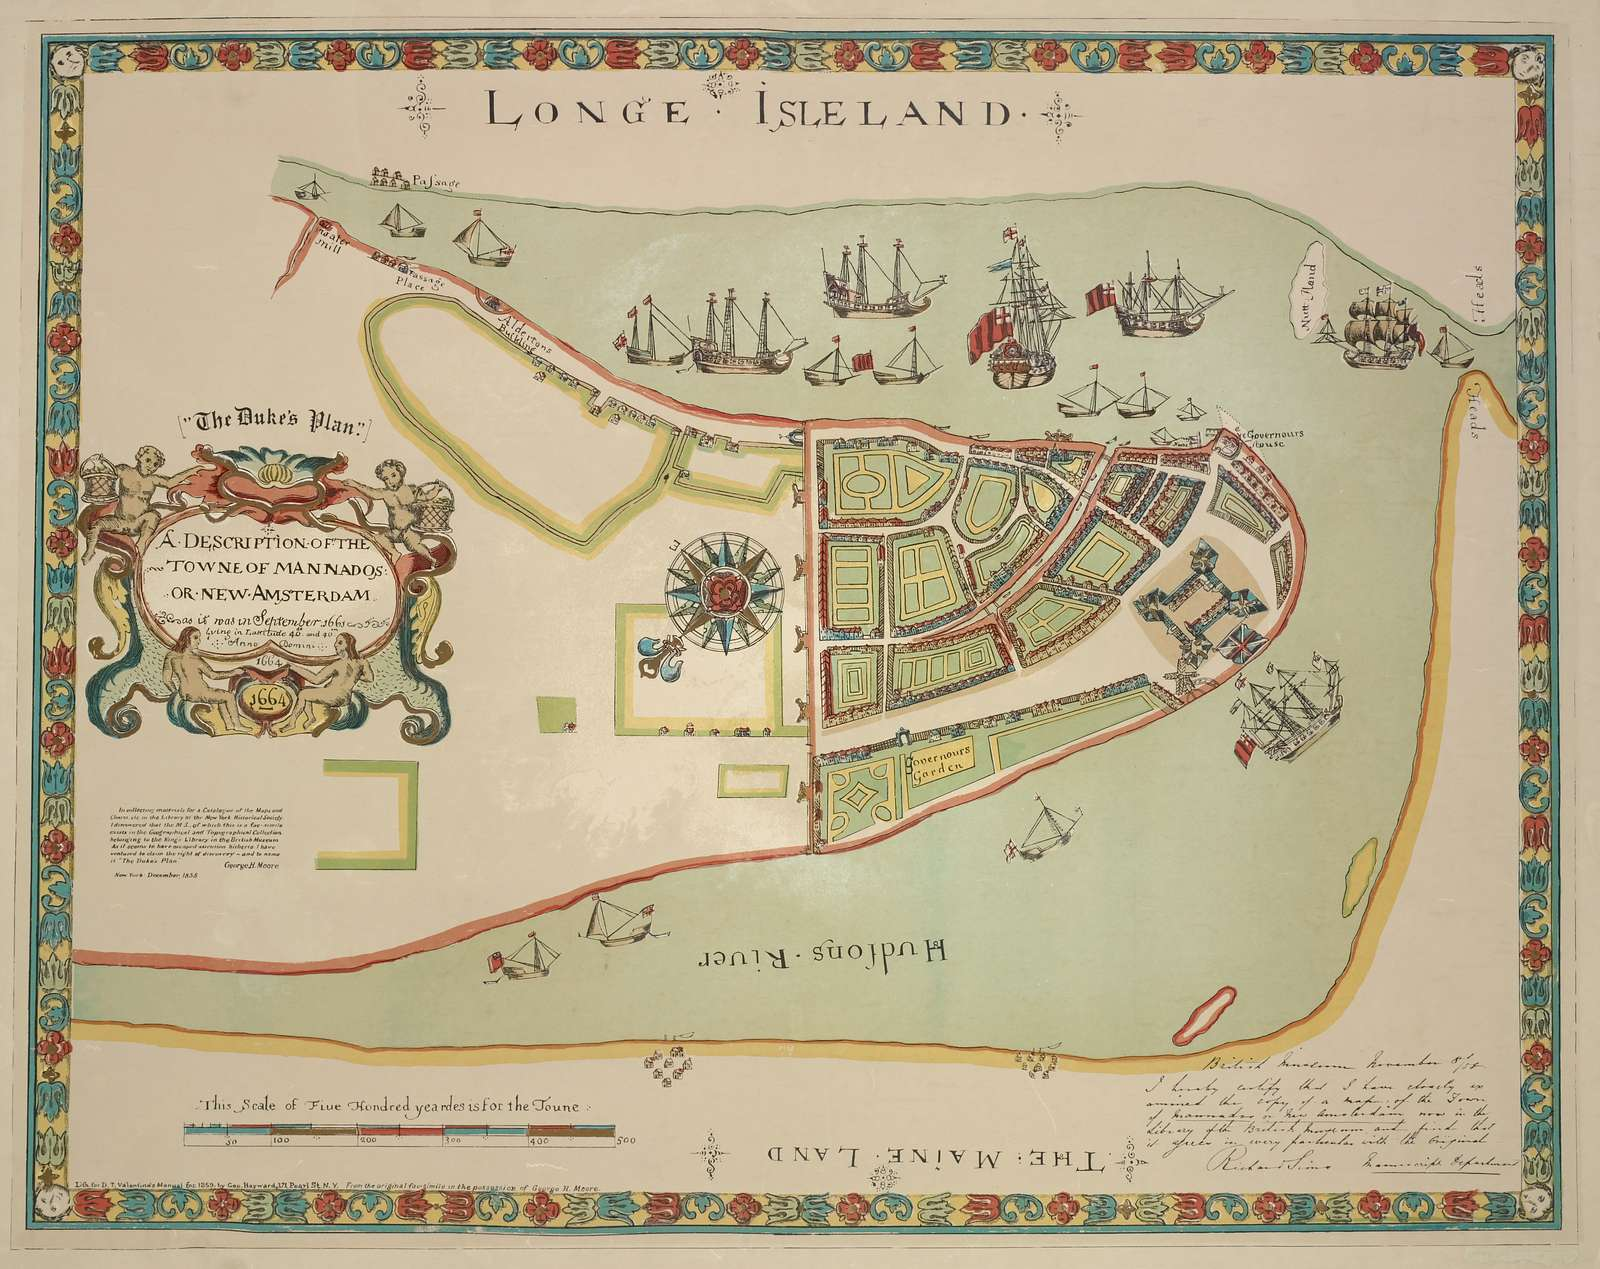 A description of the towne of Mannados: or New Amsterdam, as it was in September 1661 . . .1664. Lith. for D. T. Valentine's manual for 1859, by George Hayward. ; entered. . .1859, by George Hayward